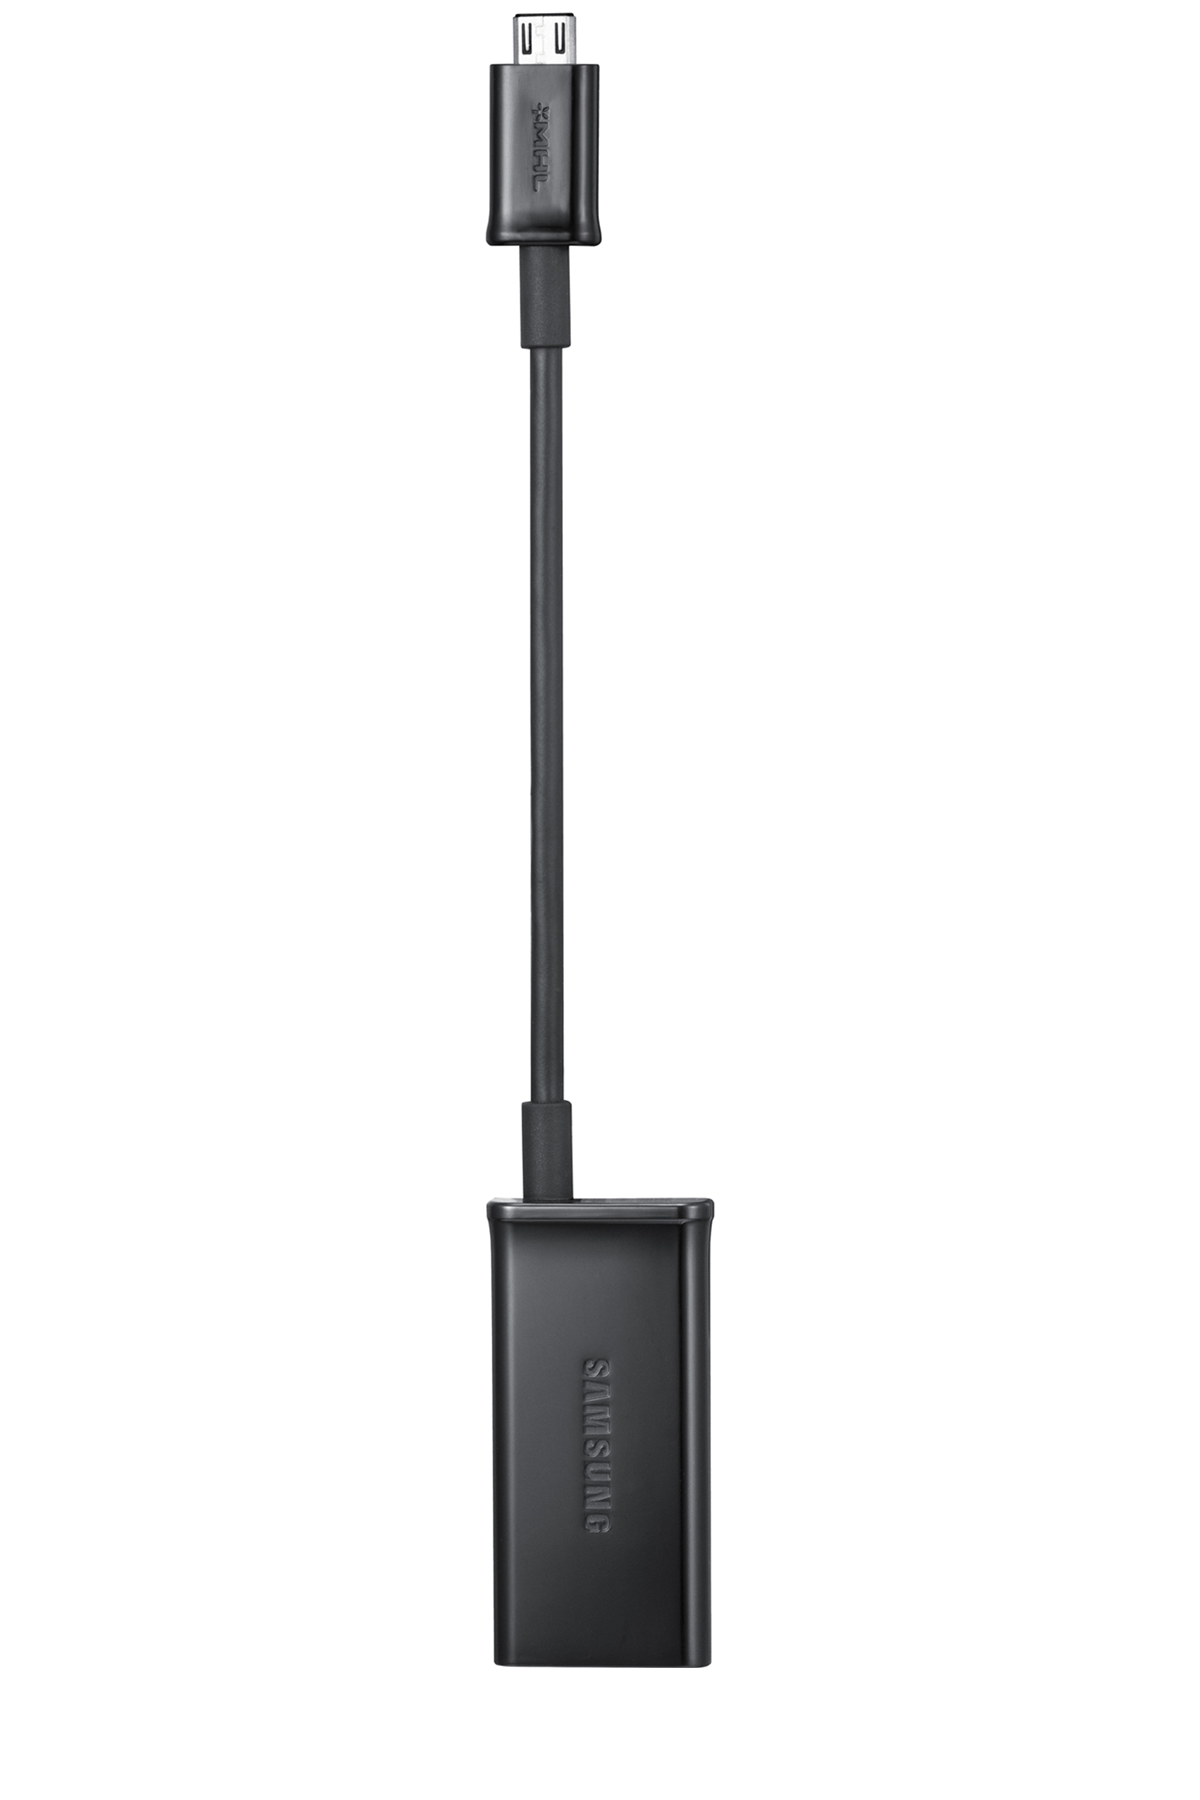 HDTV Adapter(I/F: Micro USB)